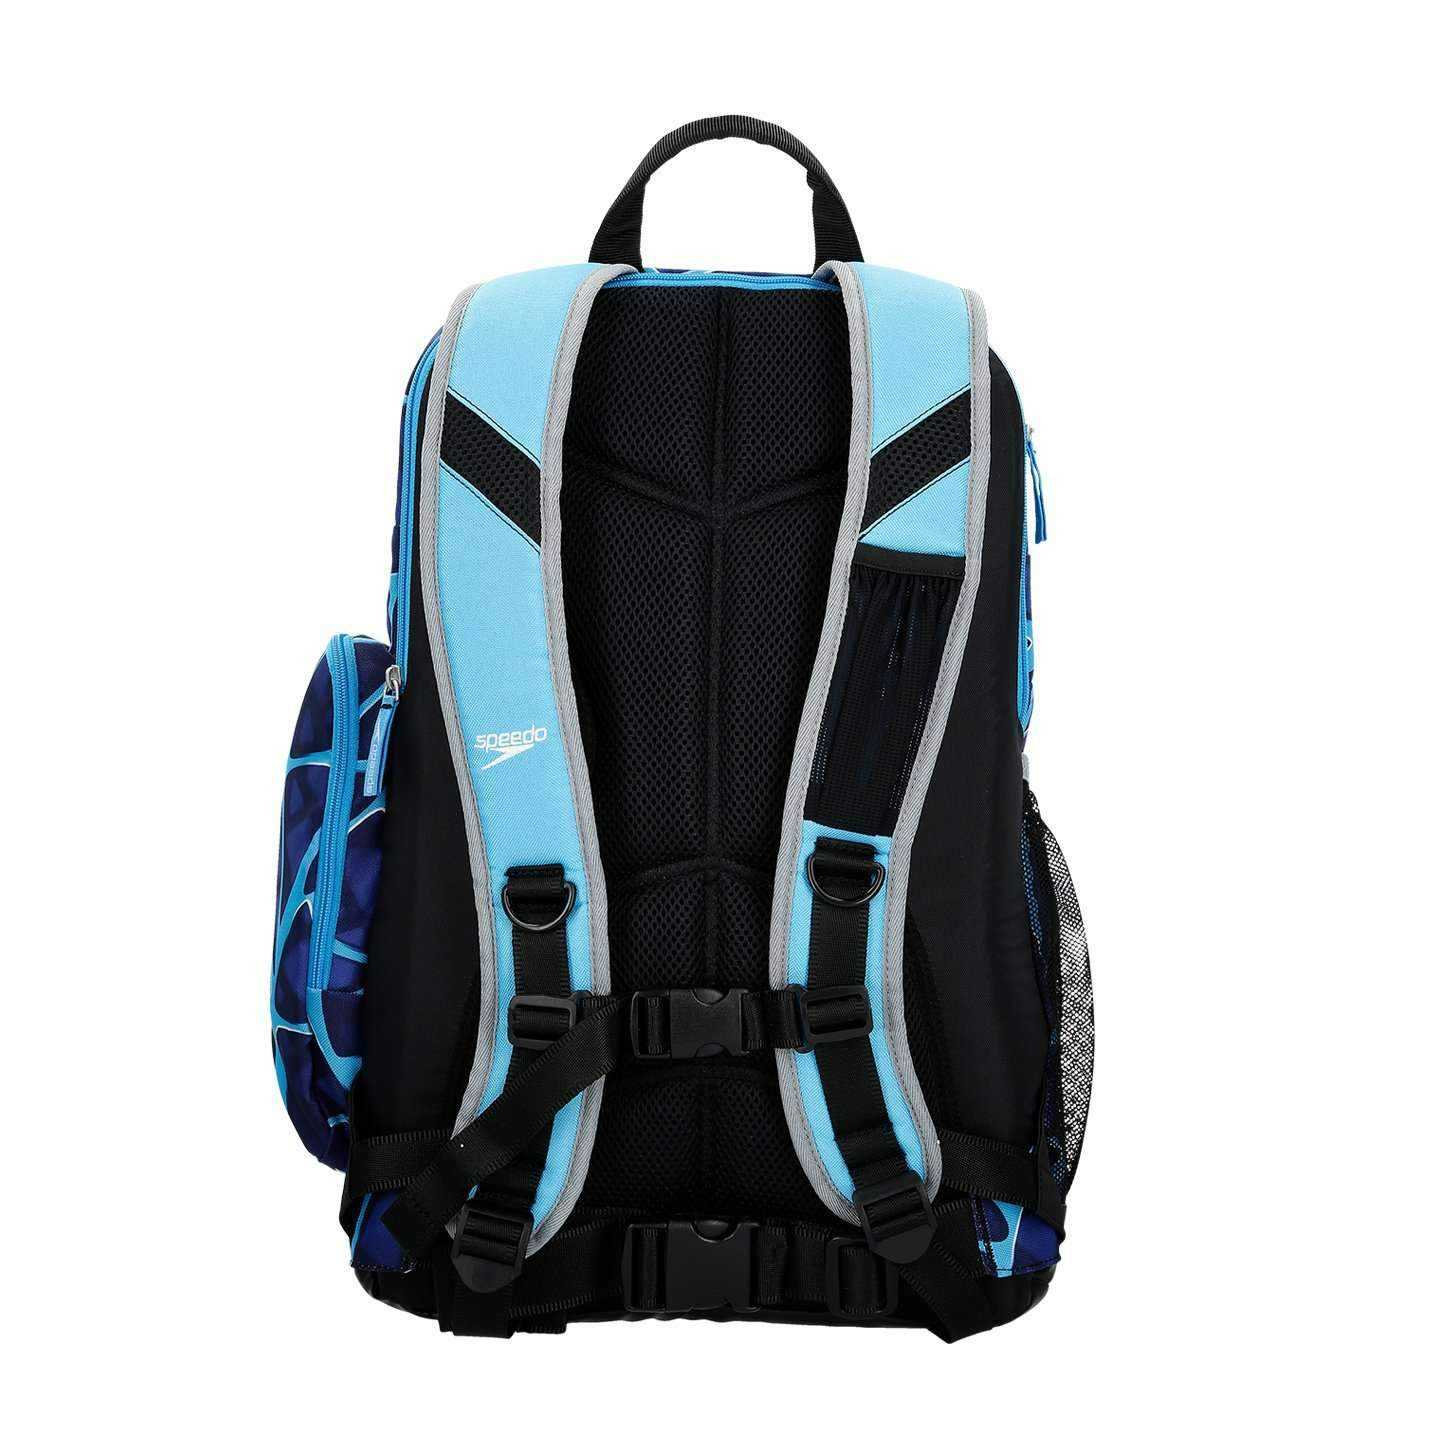 T-kit Limited Edition Teamster Backpack Limited Edition | Zwemmershop